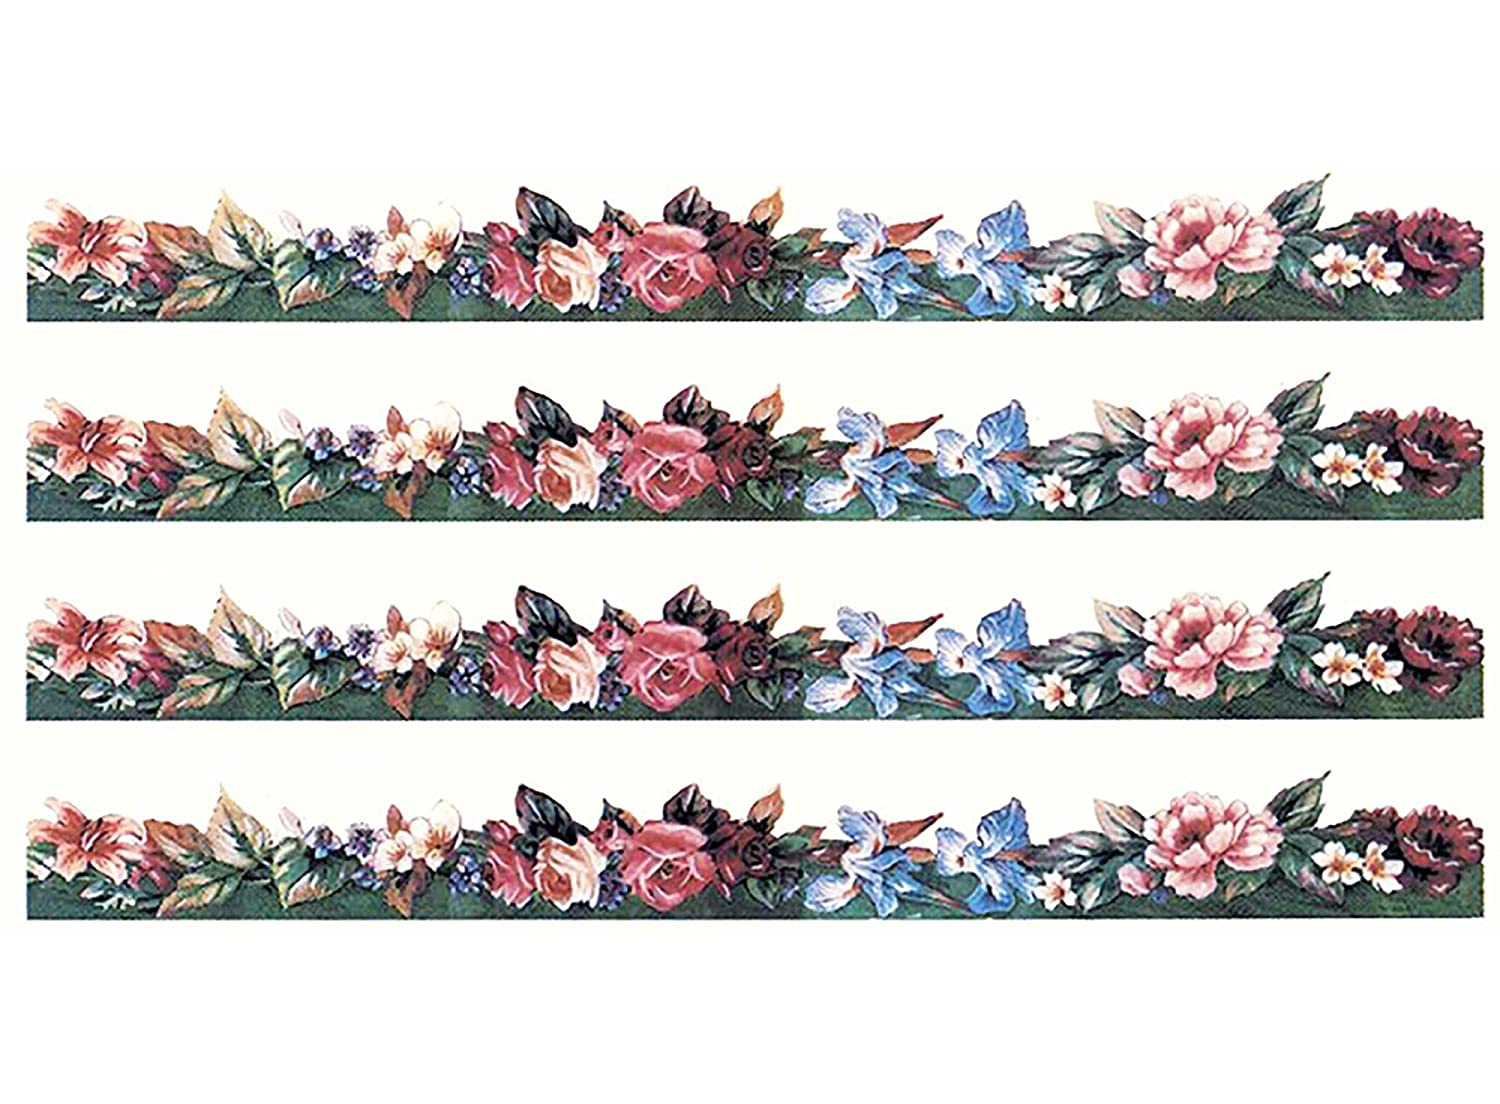 Victorian Flower Border 3018 E Waterslide Ceramic Decals By The Sheet (12 X 1-1/4 5 pcs) Captive Decals